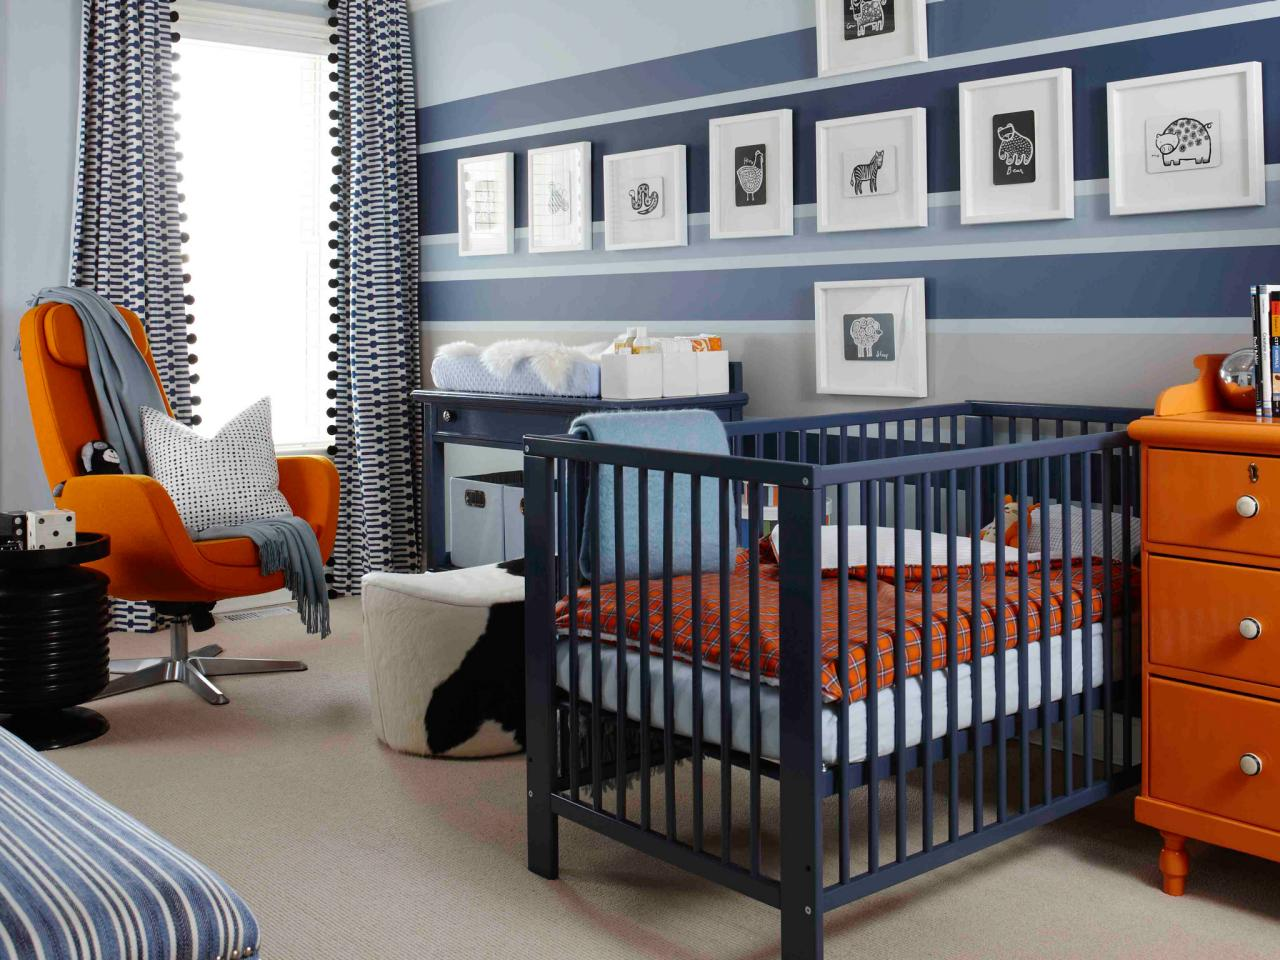 Bedroom Decorating Ideas Blue And Orange orange bedrooms: pictures, options & ideas | hgtv